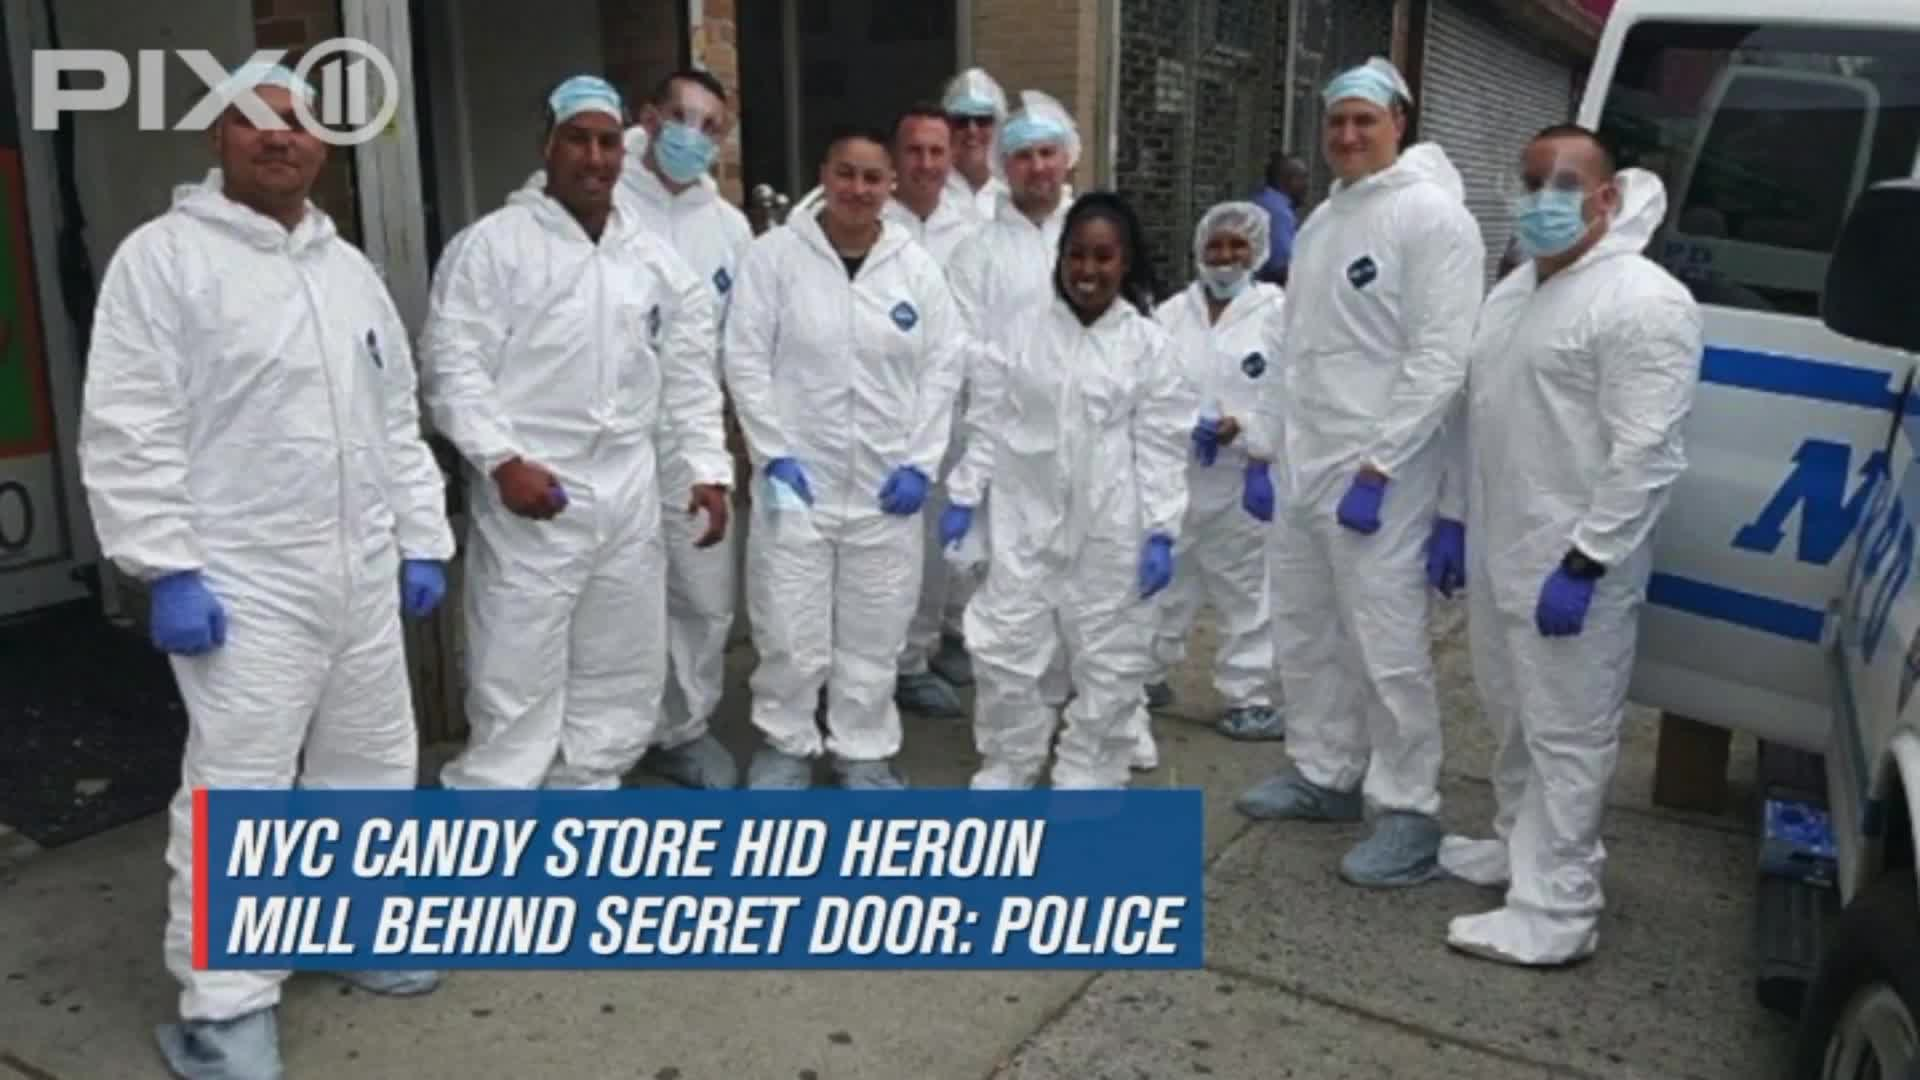 Police Say NYC Candy Store Hid Heroin Mill Behind Secret Door